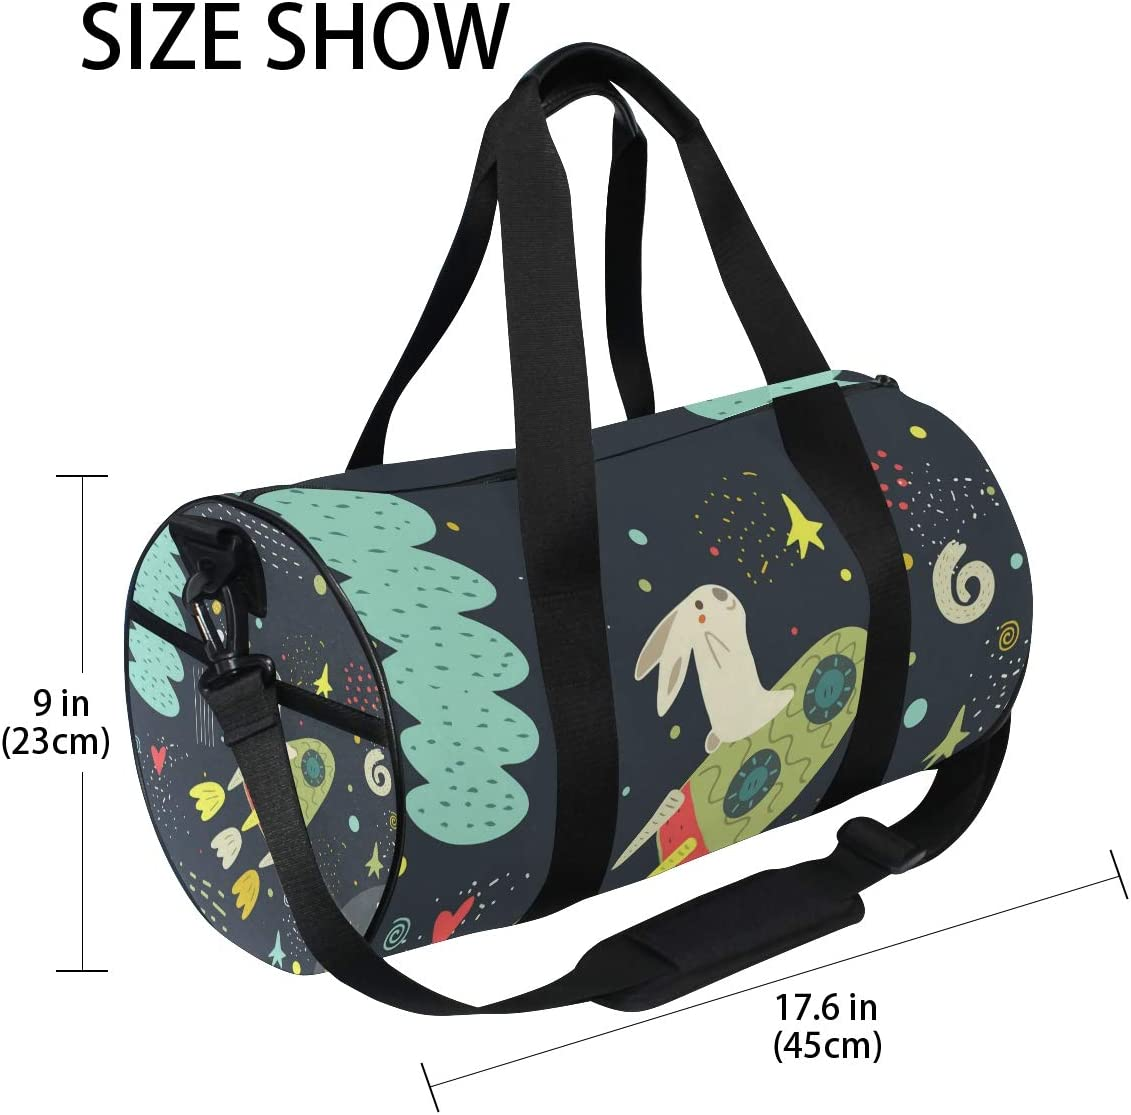 MALPLENA Rabbit On Spacecraft Drum gym duffel bag women Travel Bag